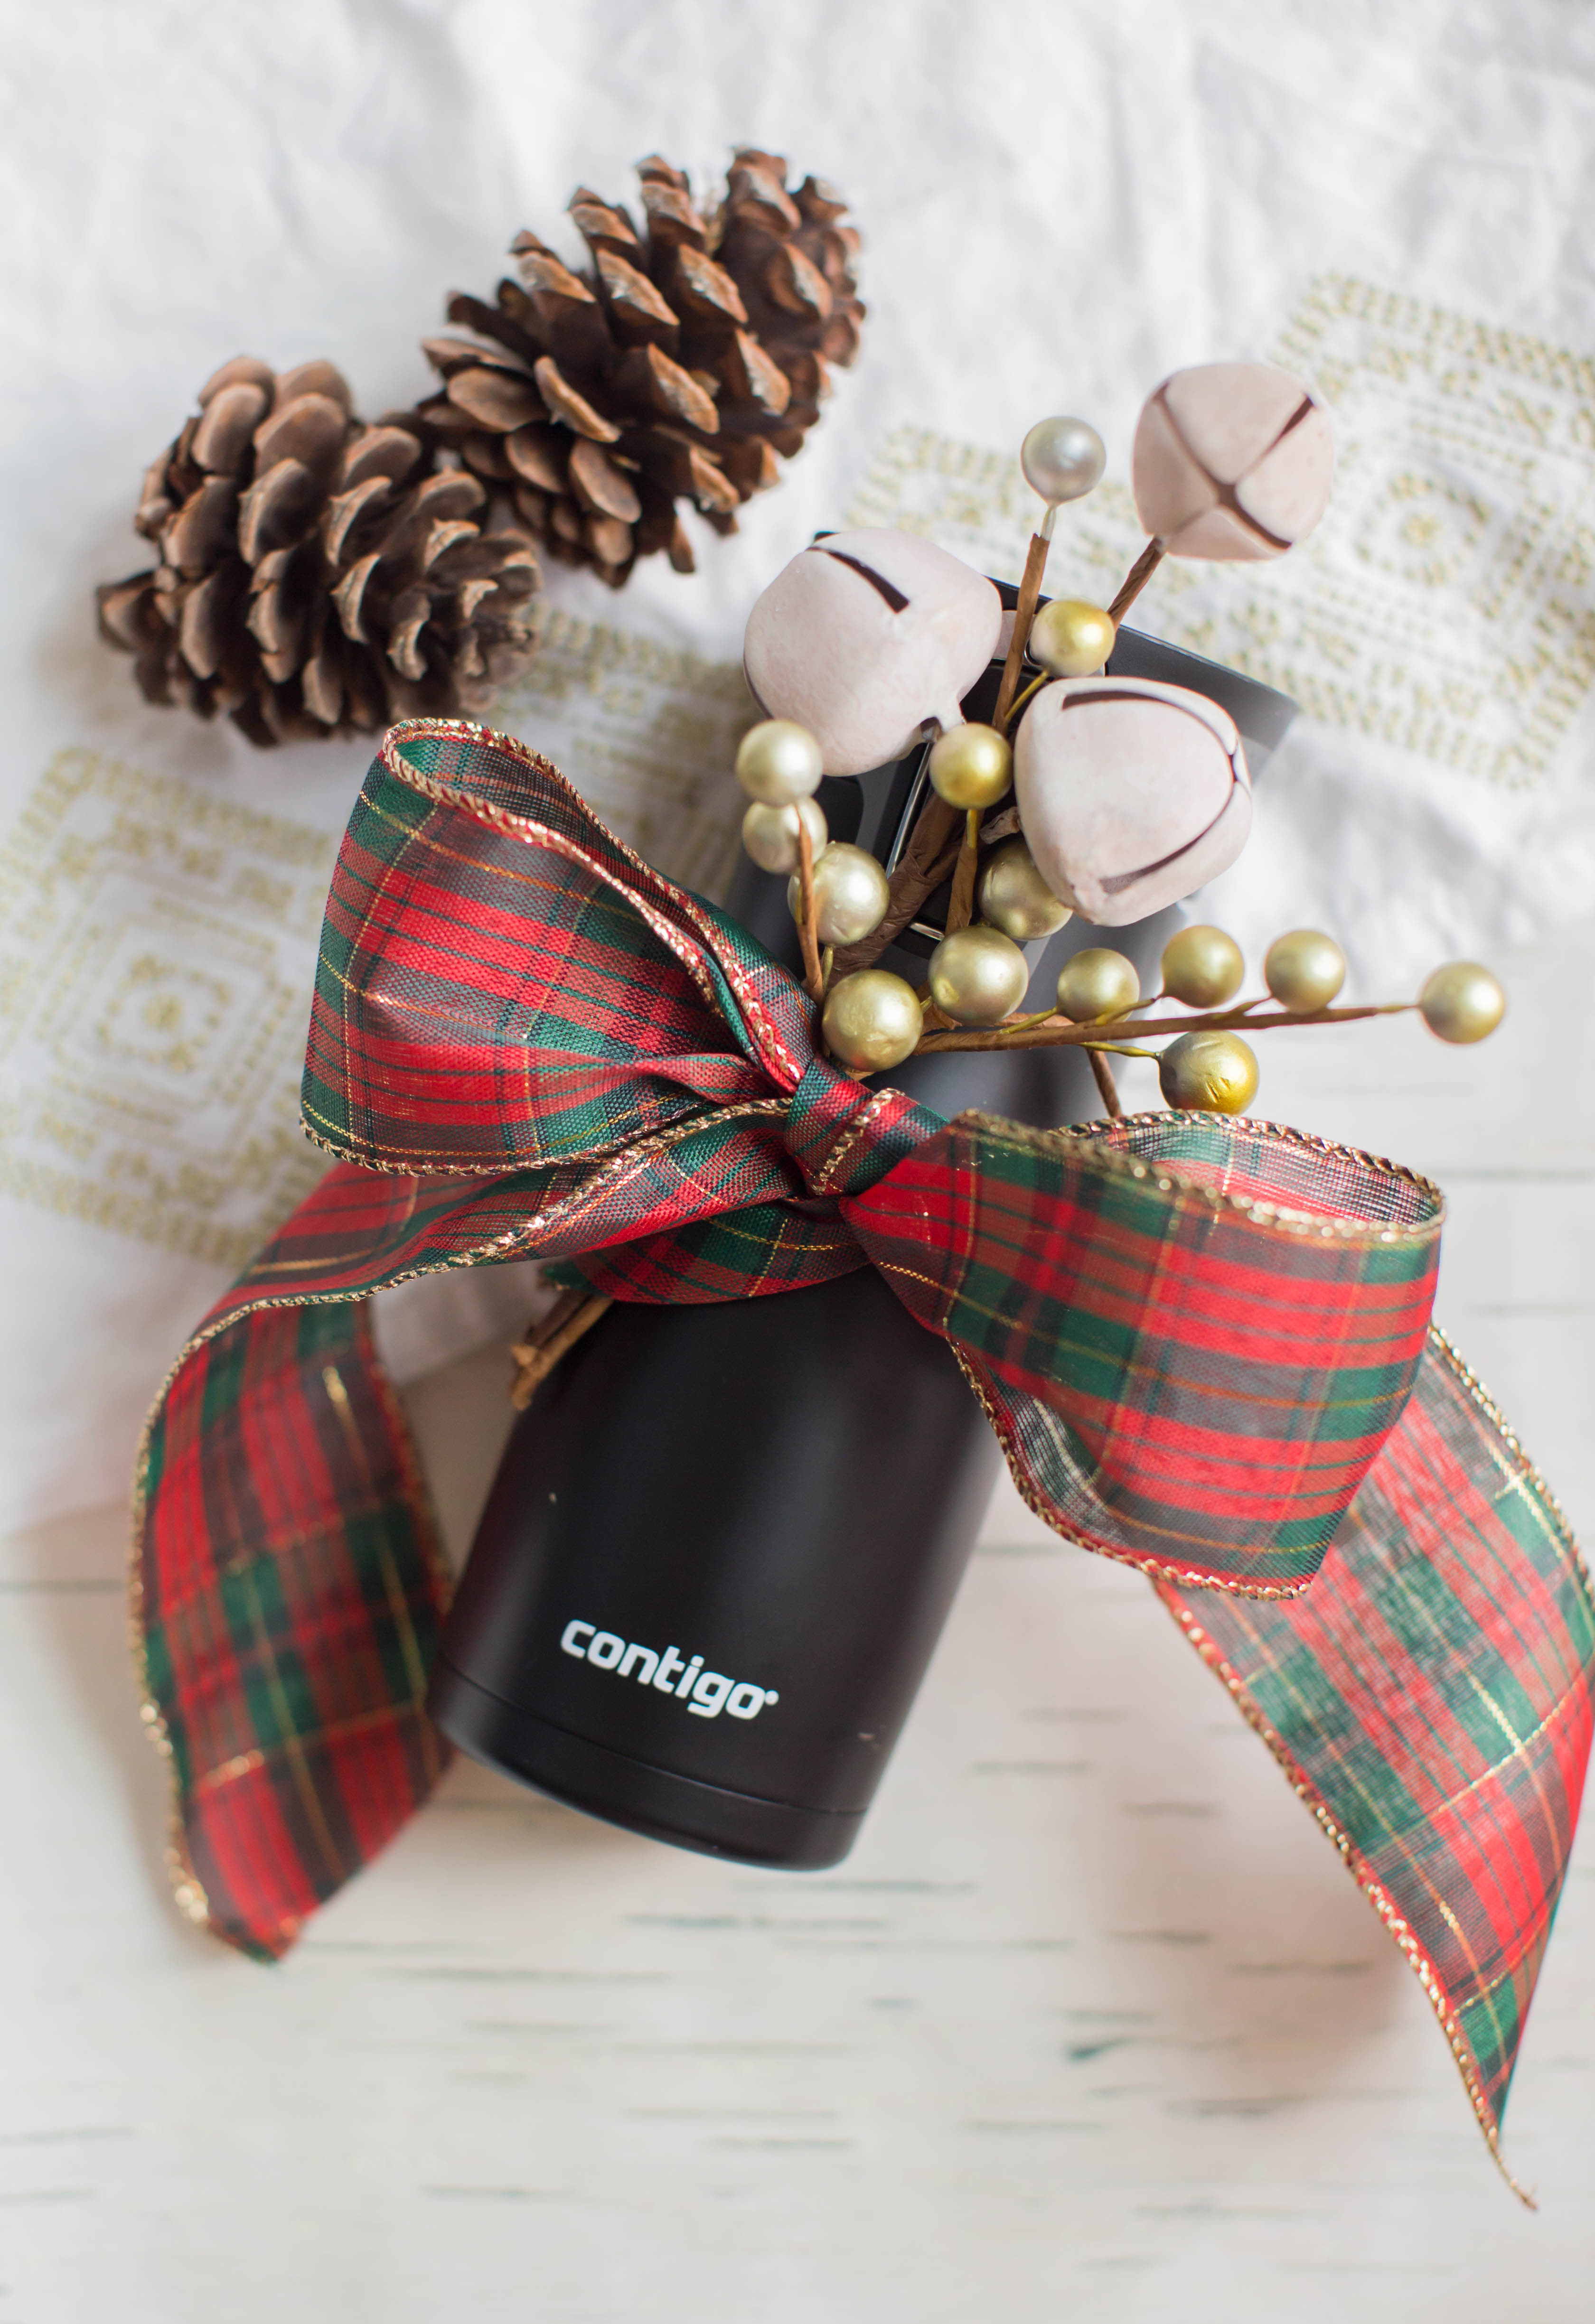 5 Ways to Spruce Up Your Gift Giving this Season by North Carolina lifestyle blogger Coffee Beans and Bobby Pins